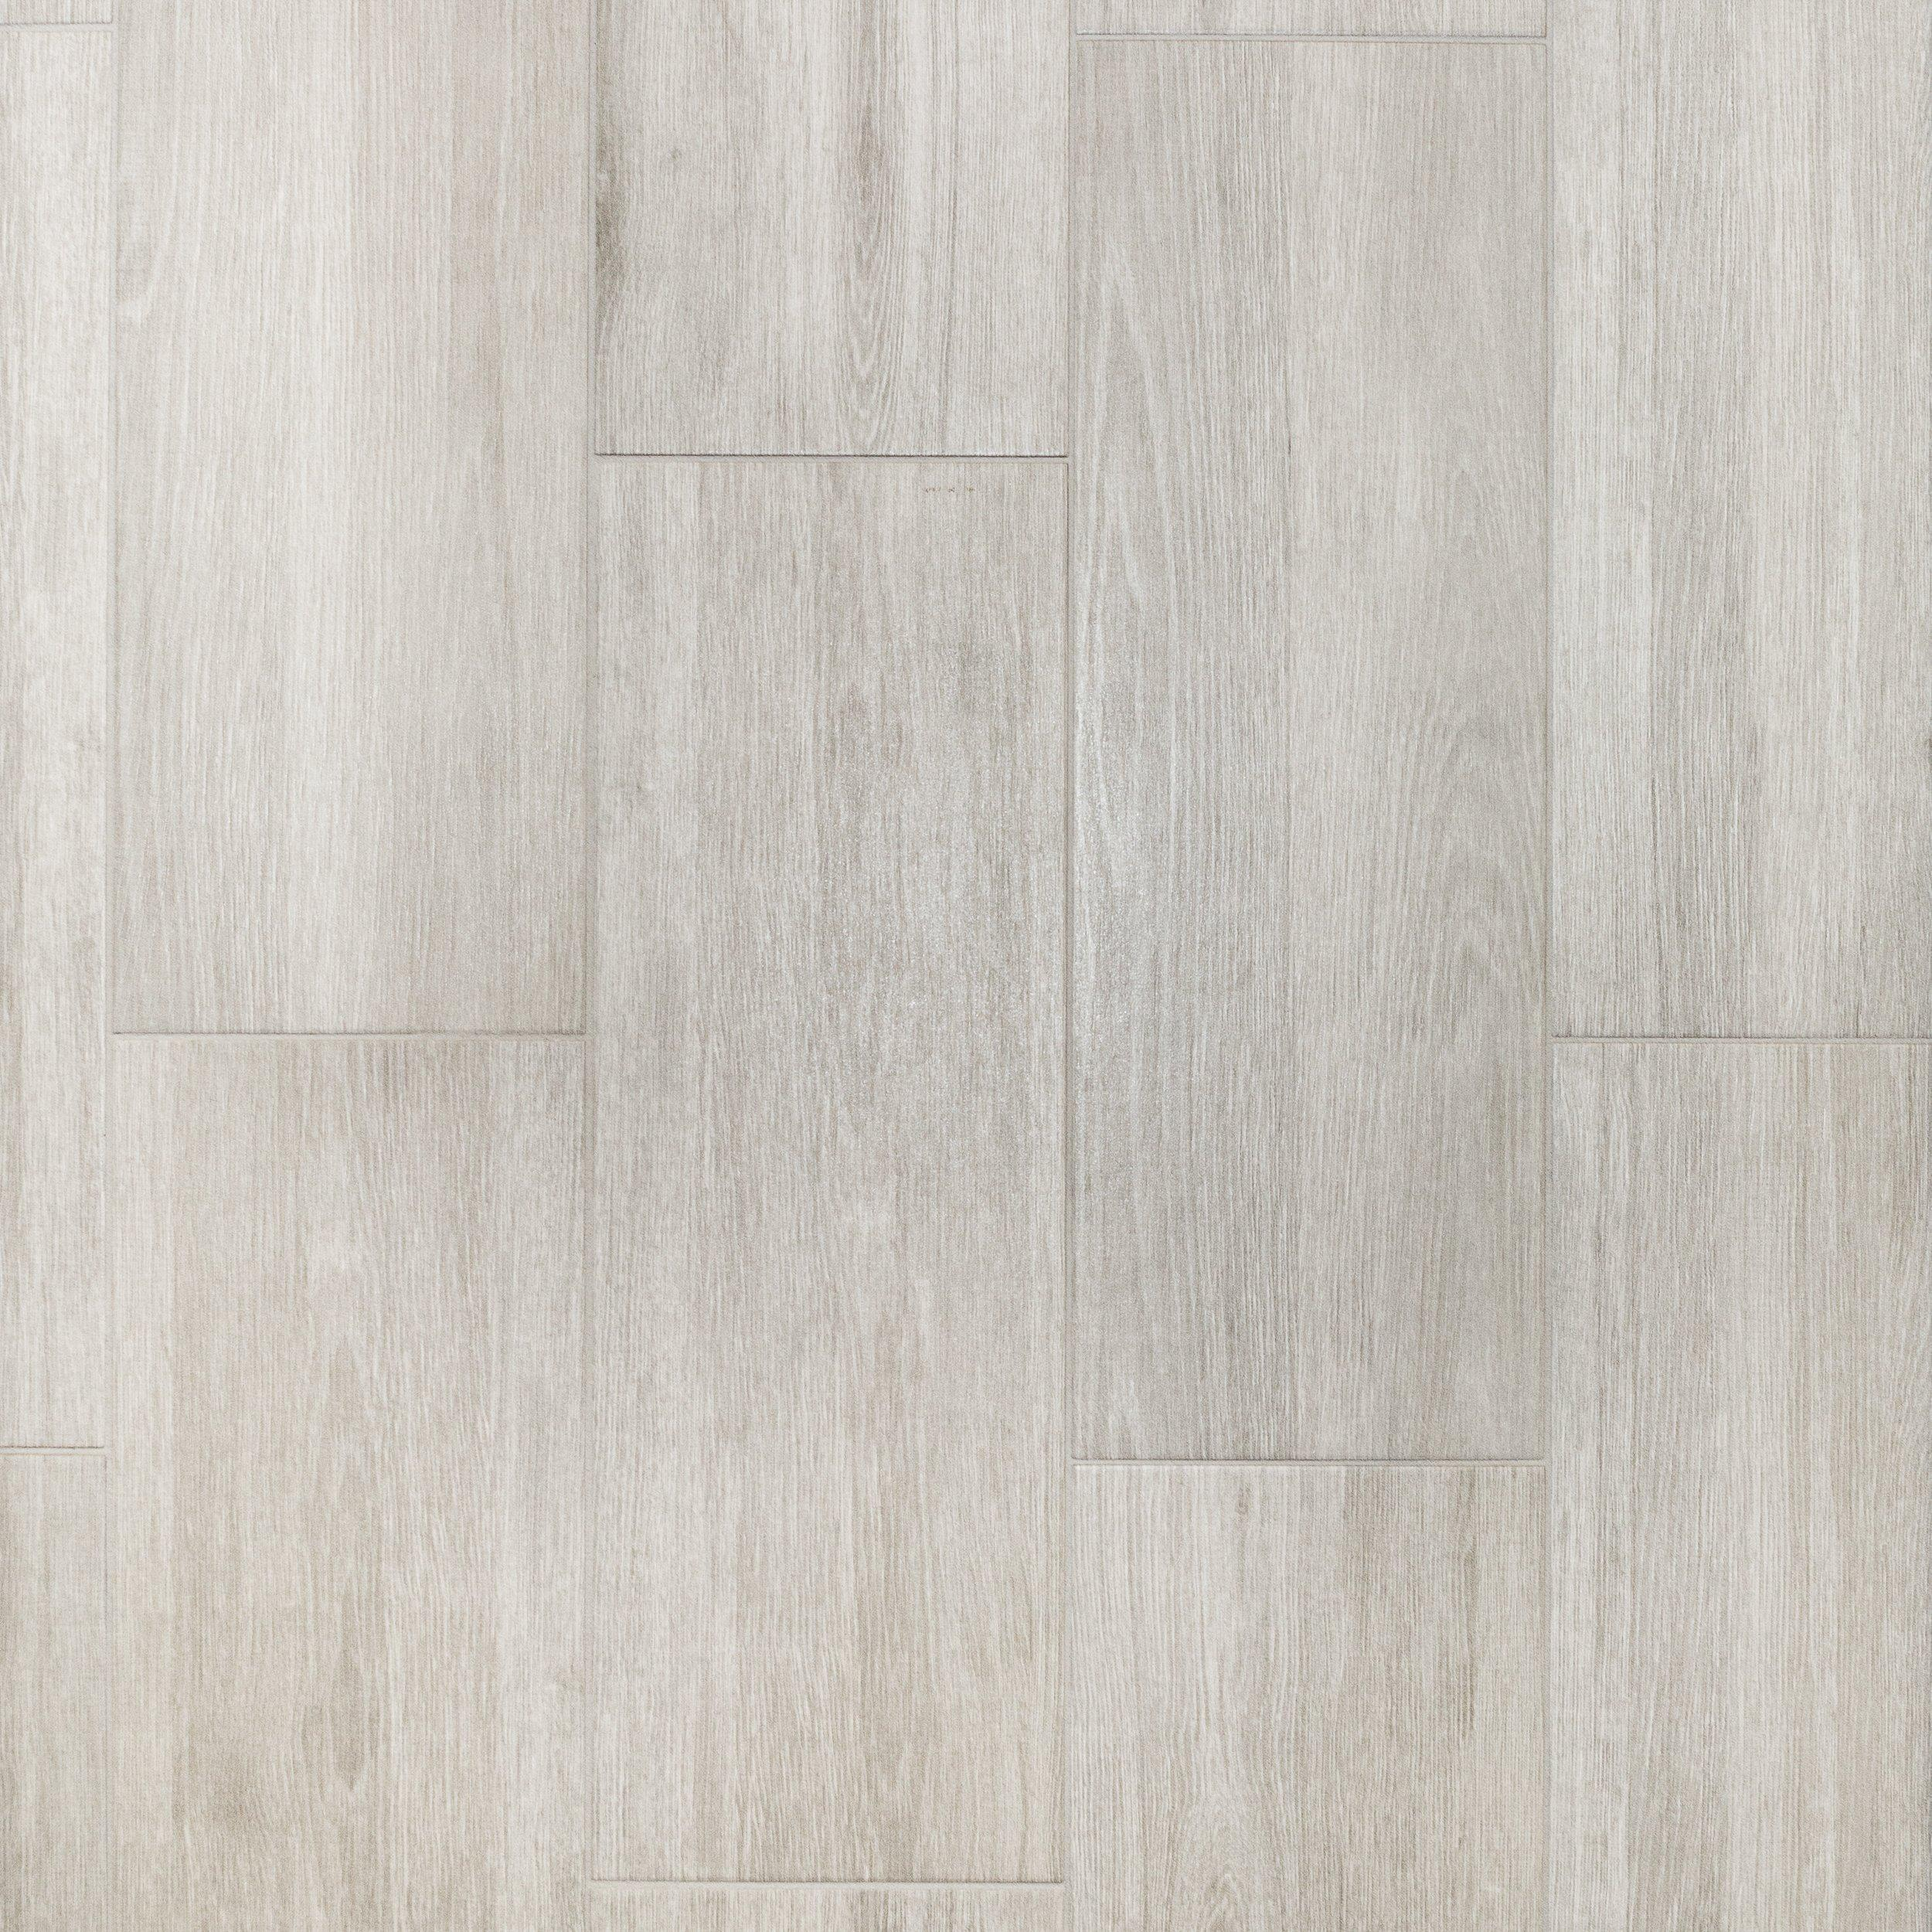 Ceramic floor tiles ronne gris wood plank ceramic tile QBBZSUR